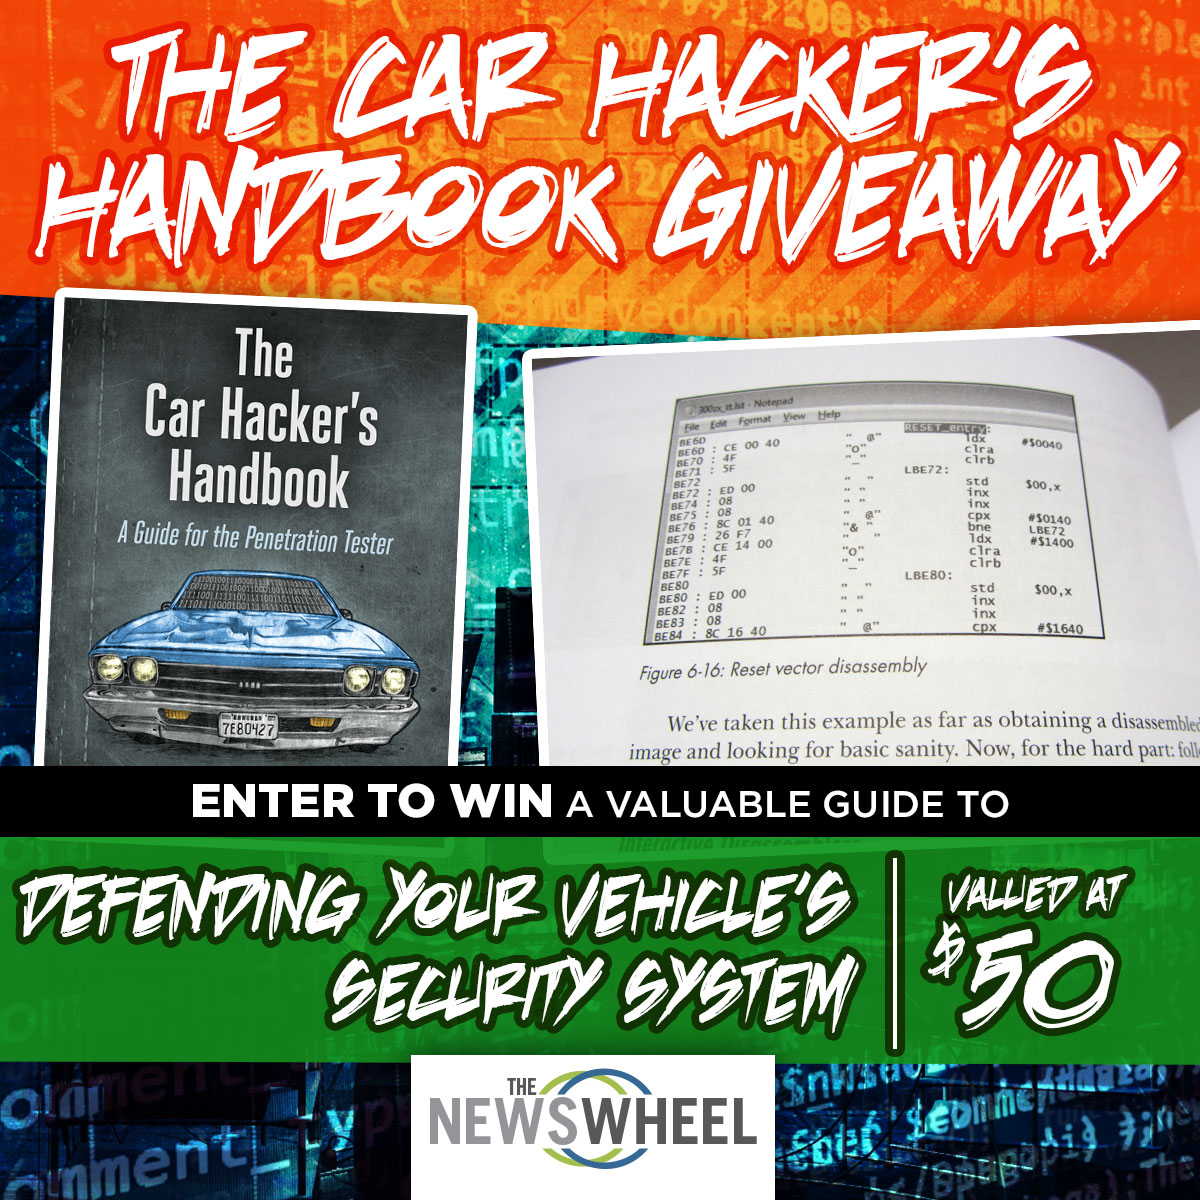 The News Wheel Car Hacker Handbook Giveaway banner